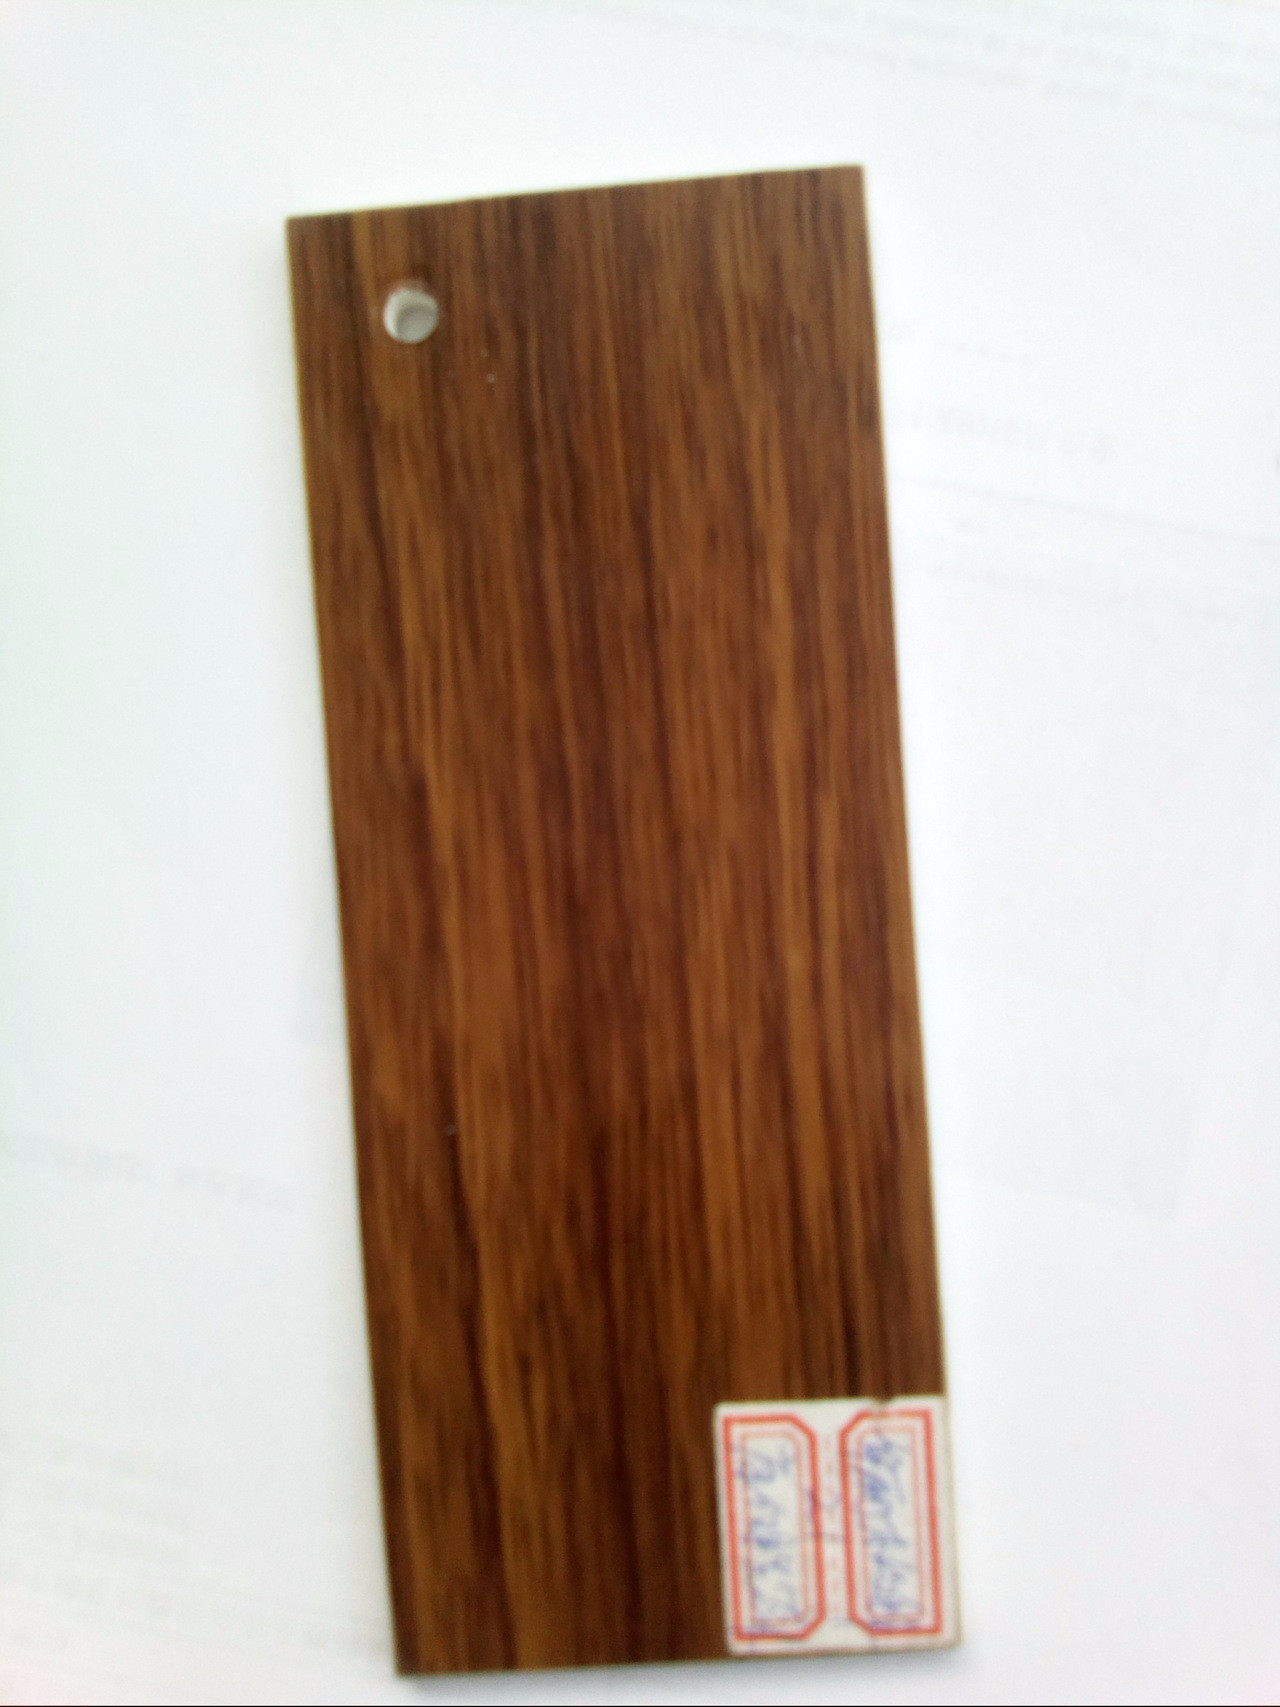 pvc hardwood flooring of china pvc wood graining board manufacturer supplier regarding pvc wood mainly modified wood powder filled in the center the purpose is to increase the boa